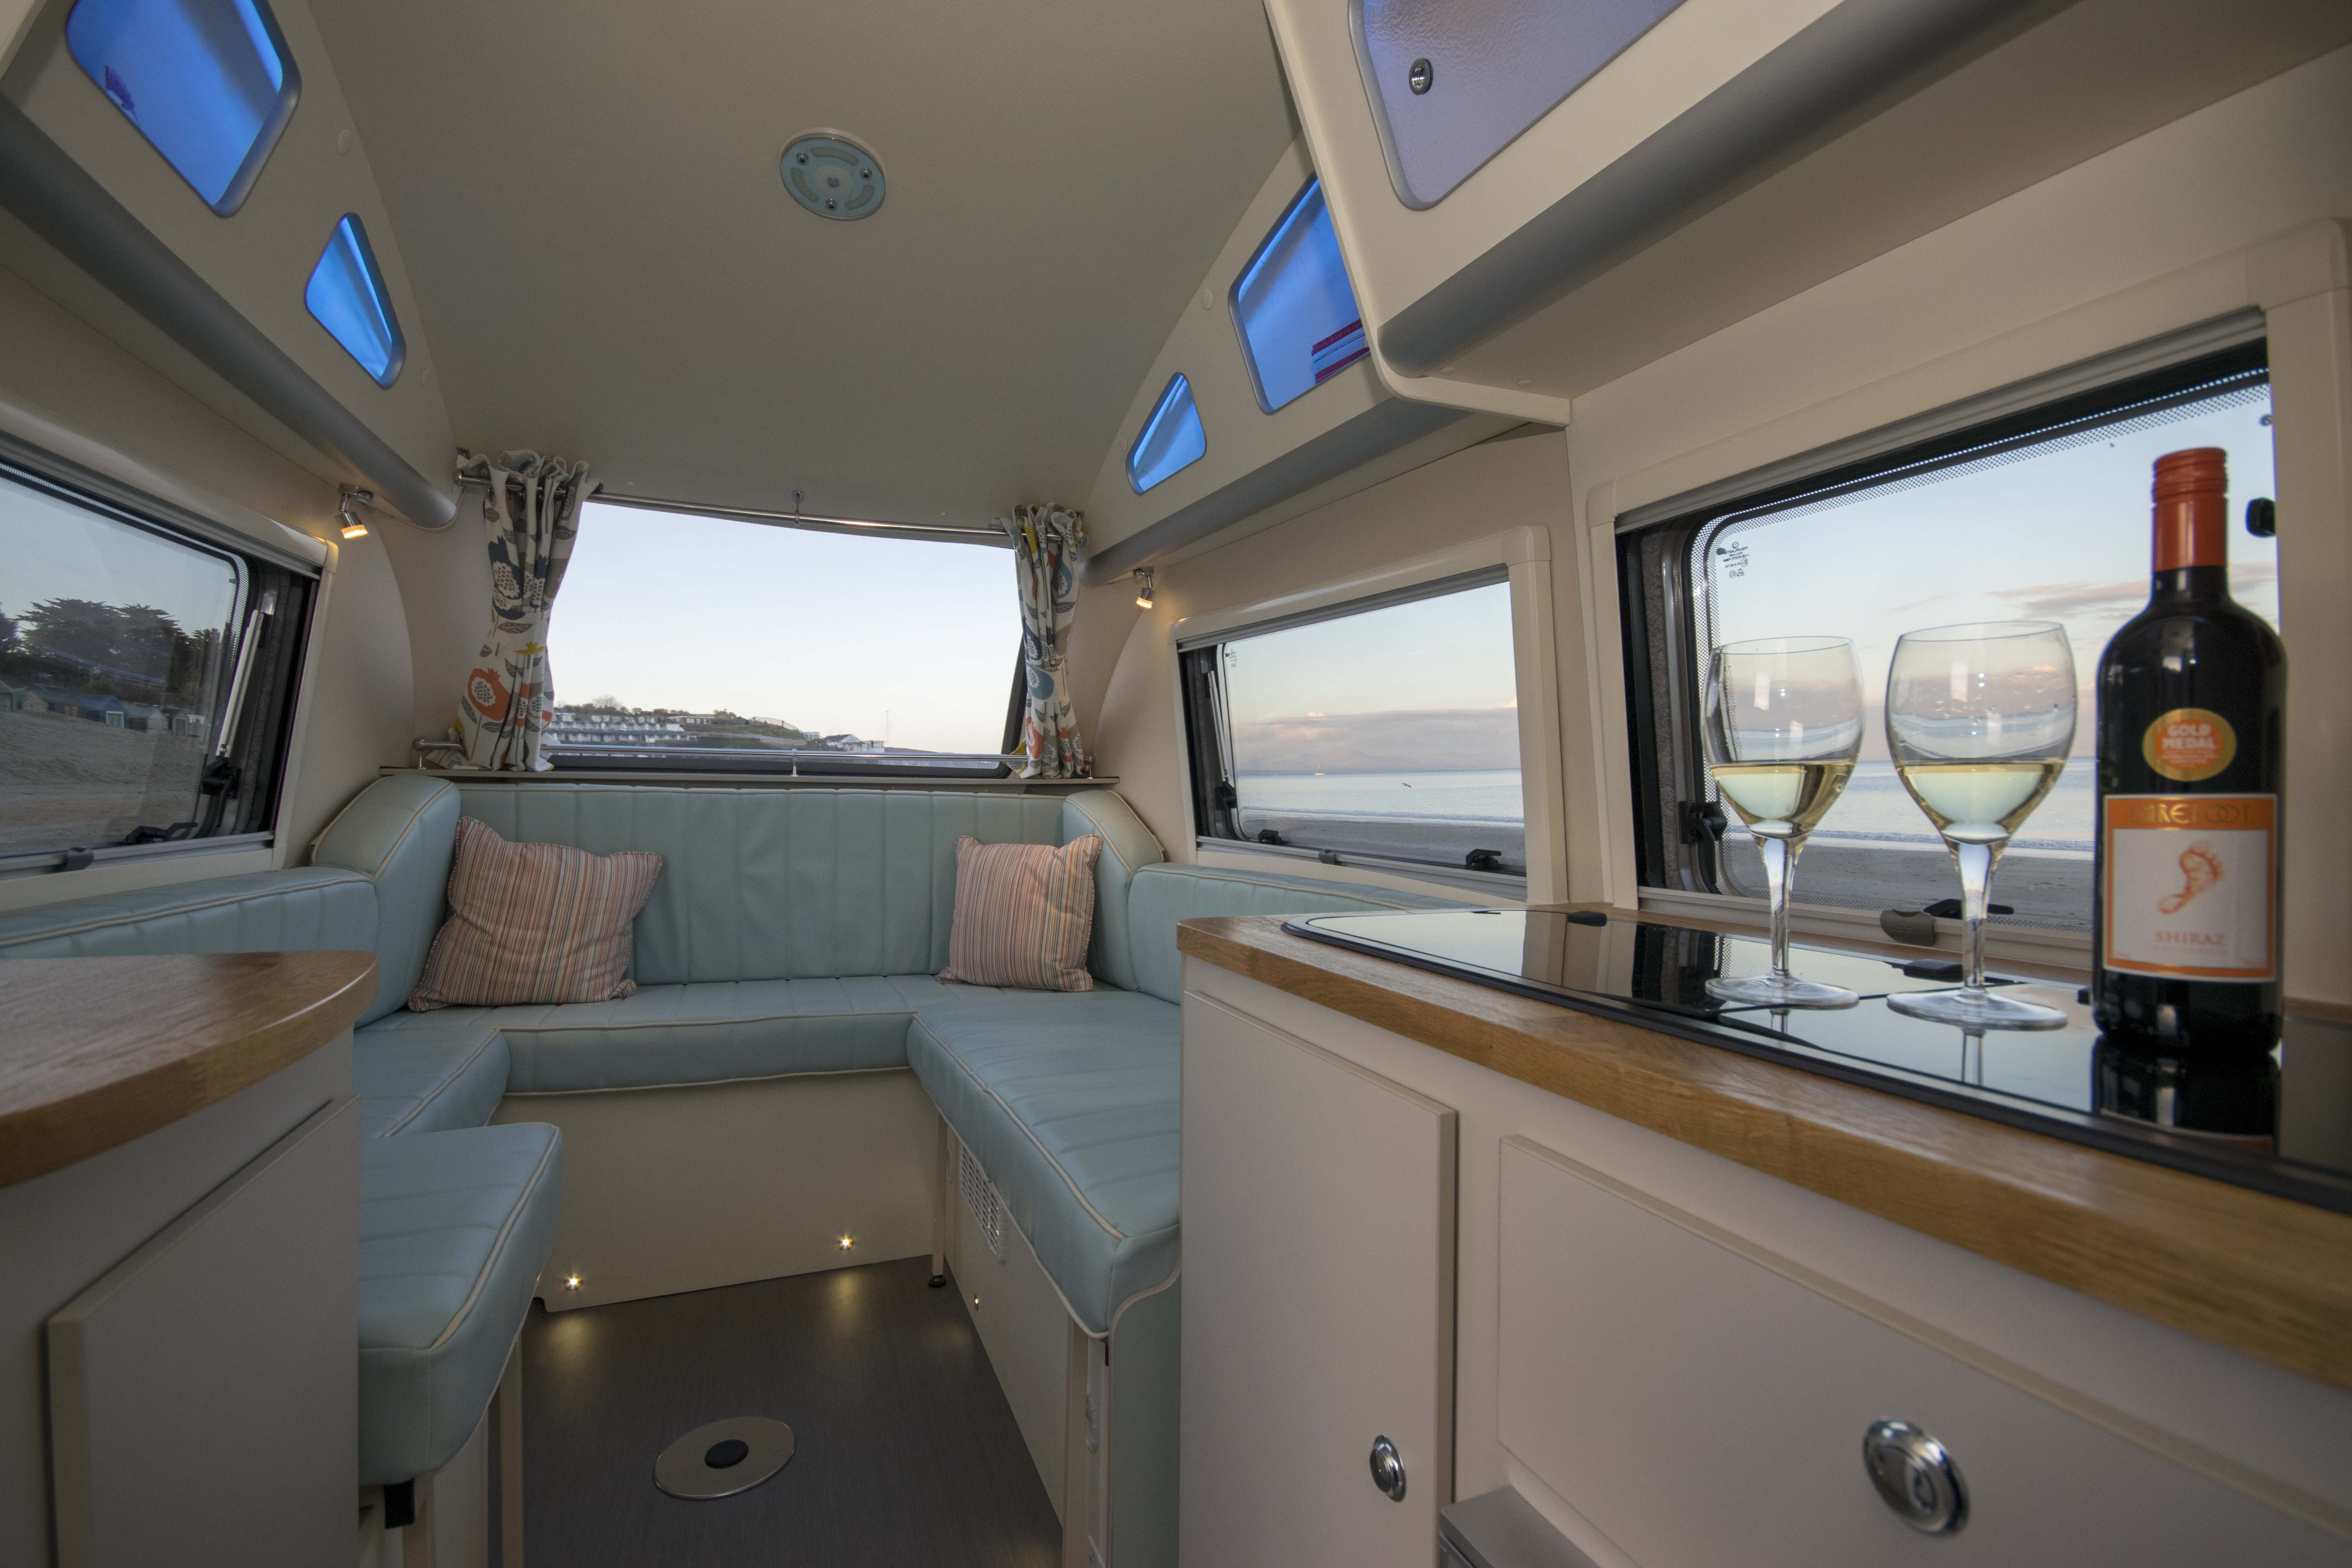 Retro-inspired camper combines curves with modern amenities